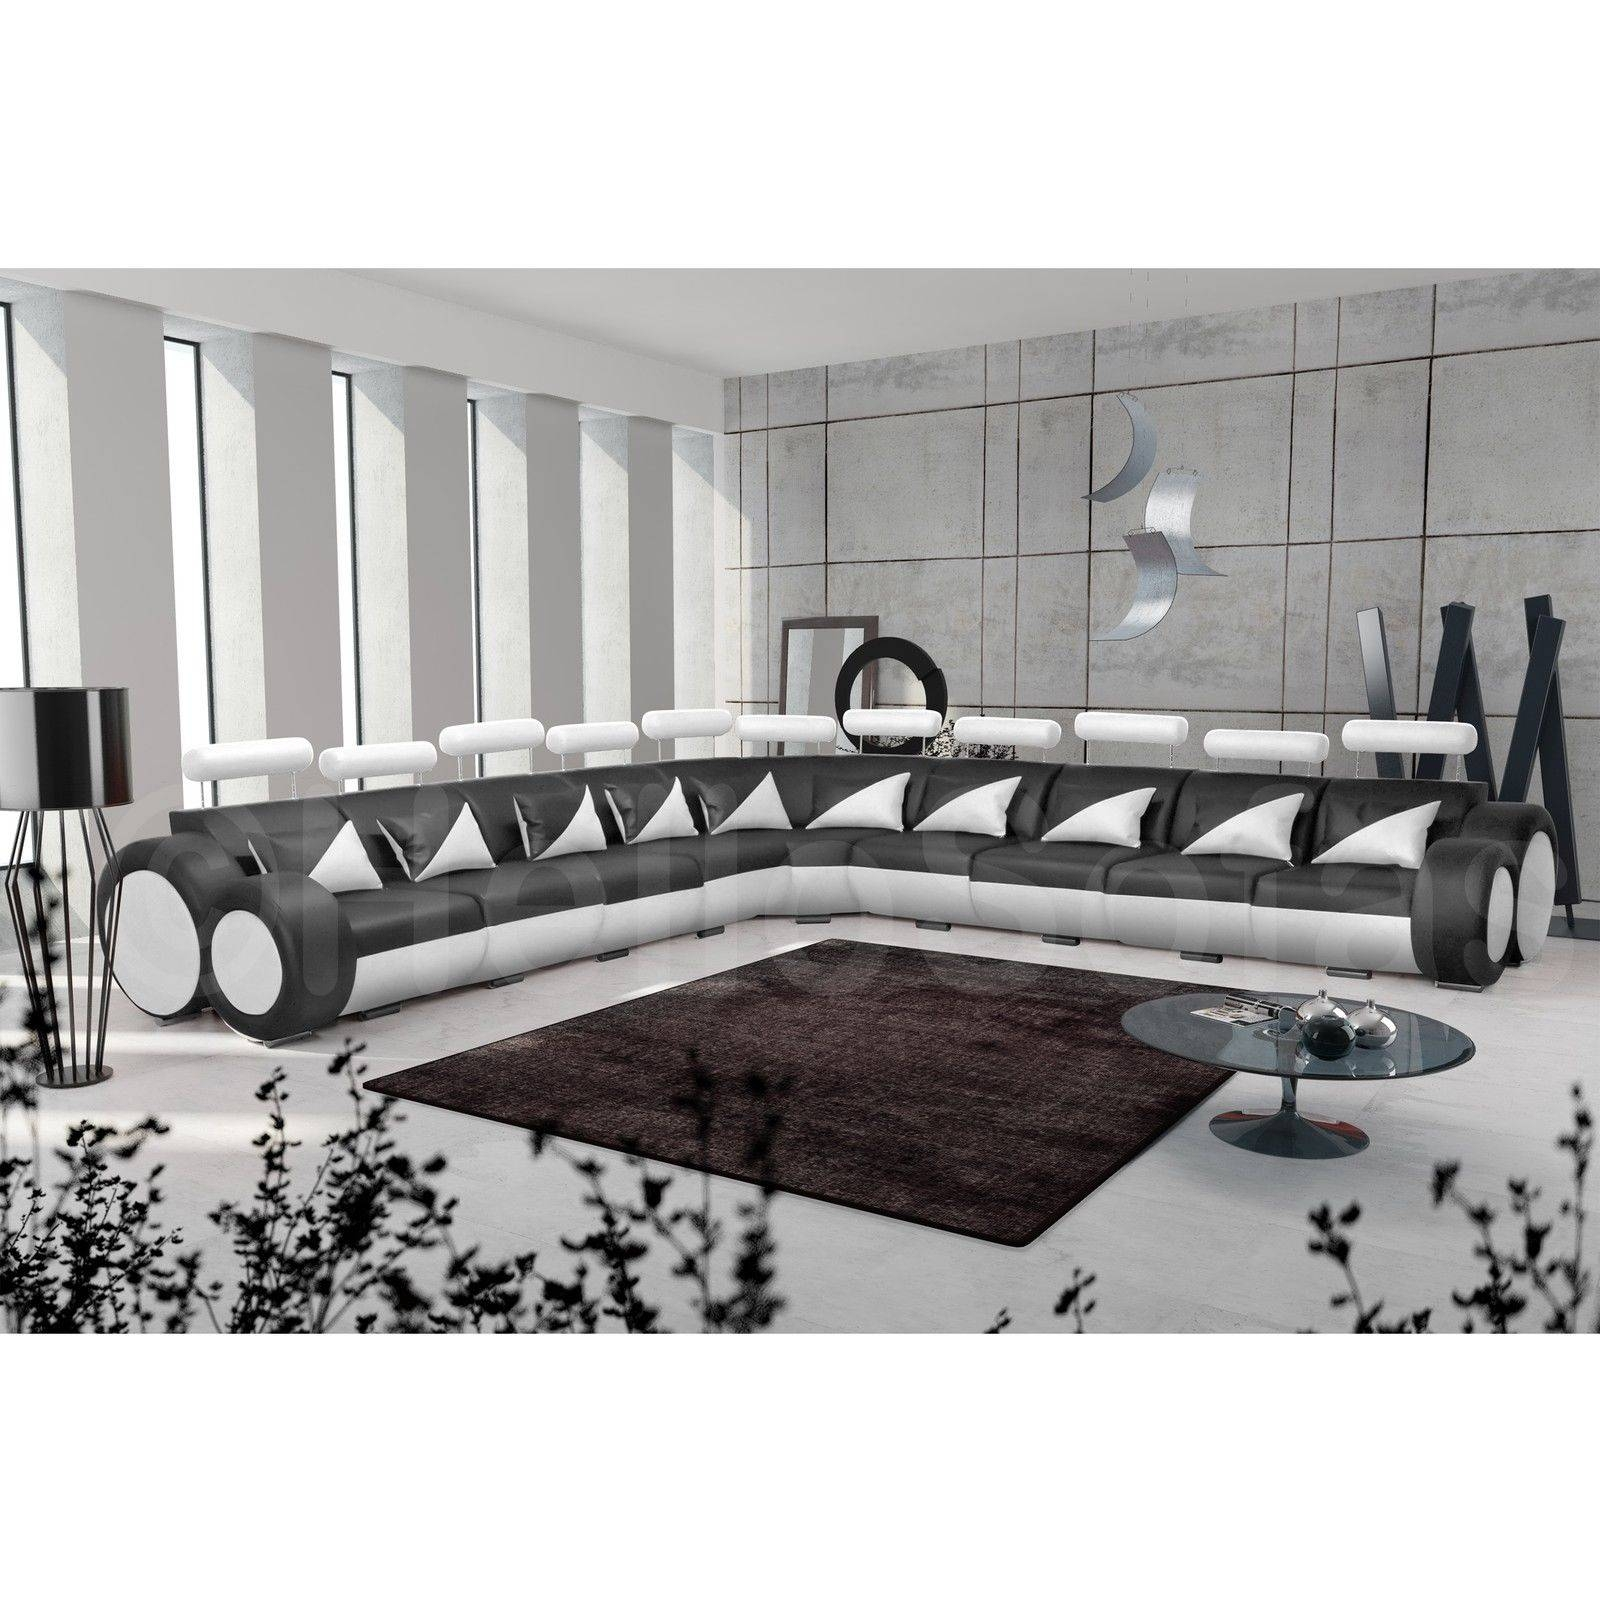 Black And White Leather Sofa With Design Hd Gallery 10358 intended for White and Black Sofas (Image 9 of 30)